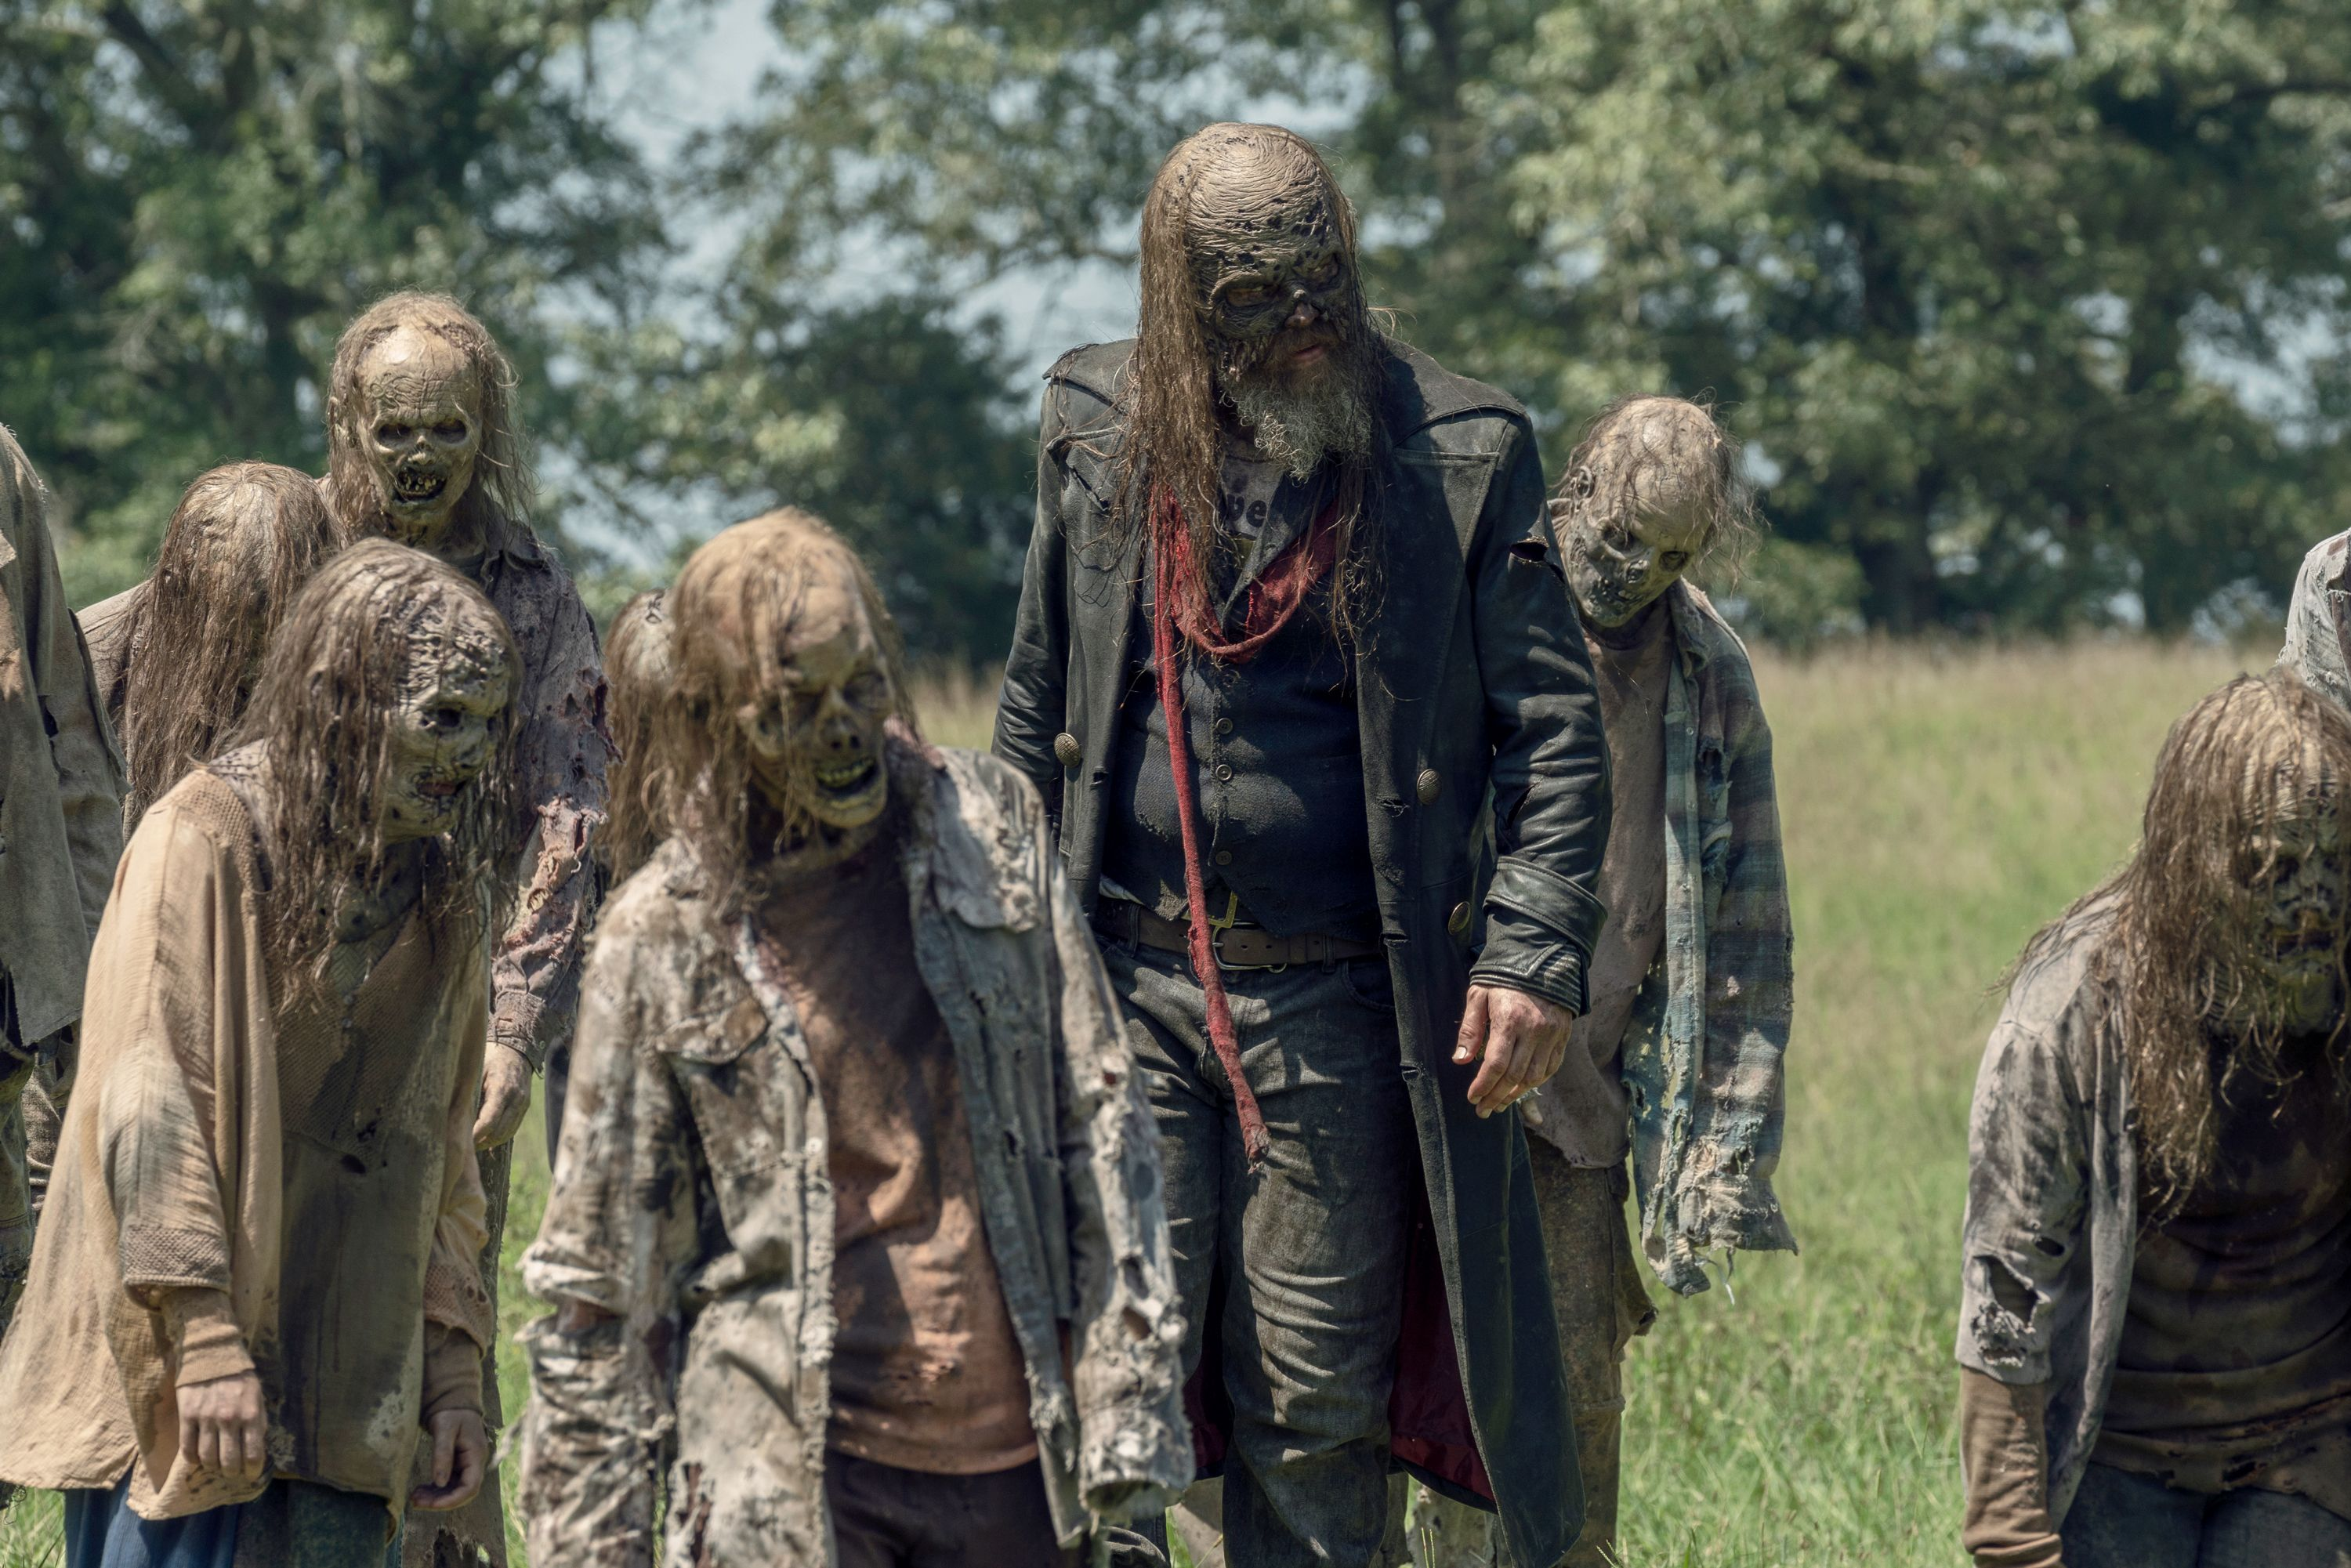 The Walking Dead season 10 episode 7 trailer shows one major character in danger of dying